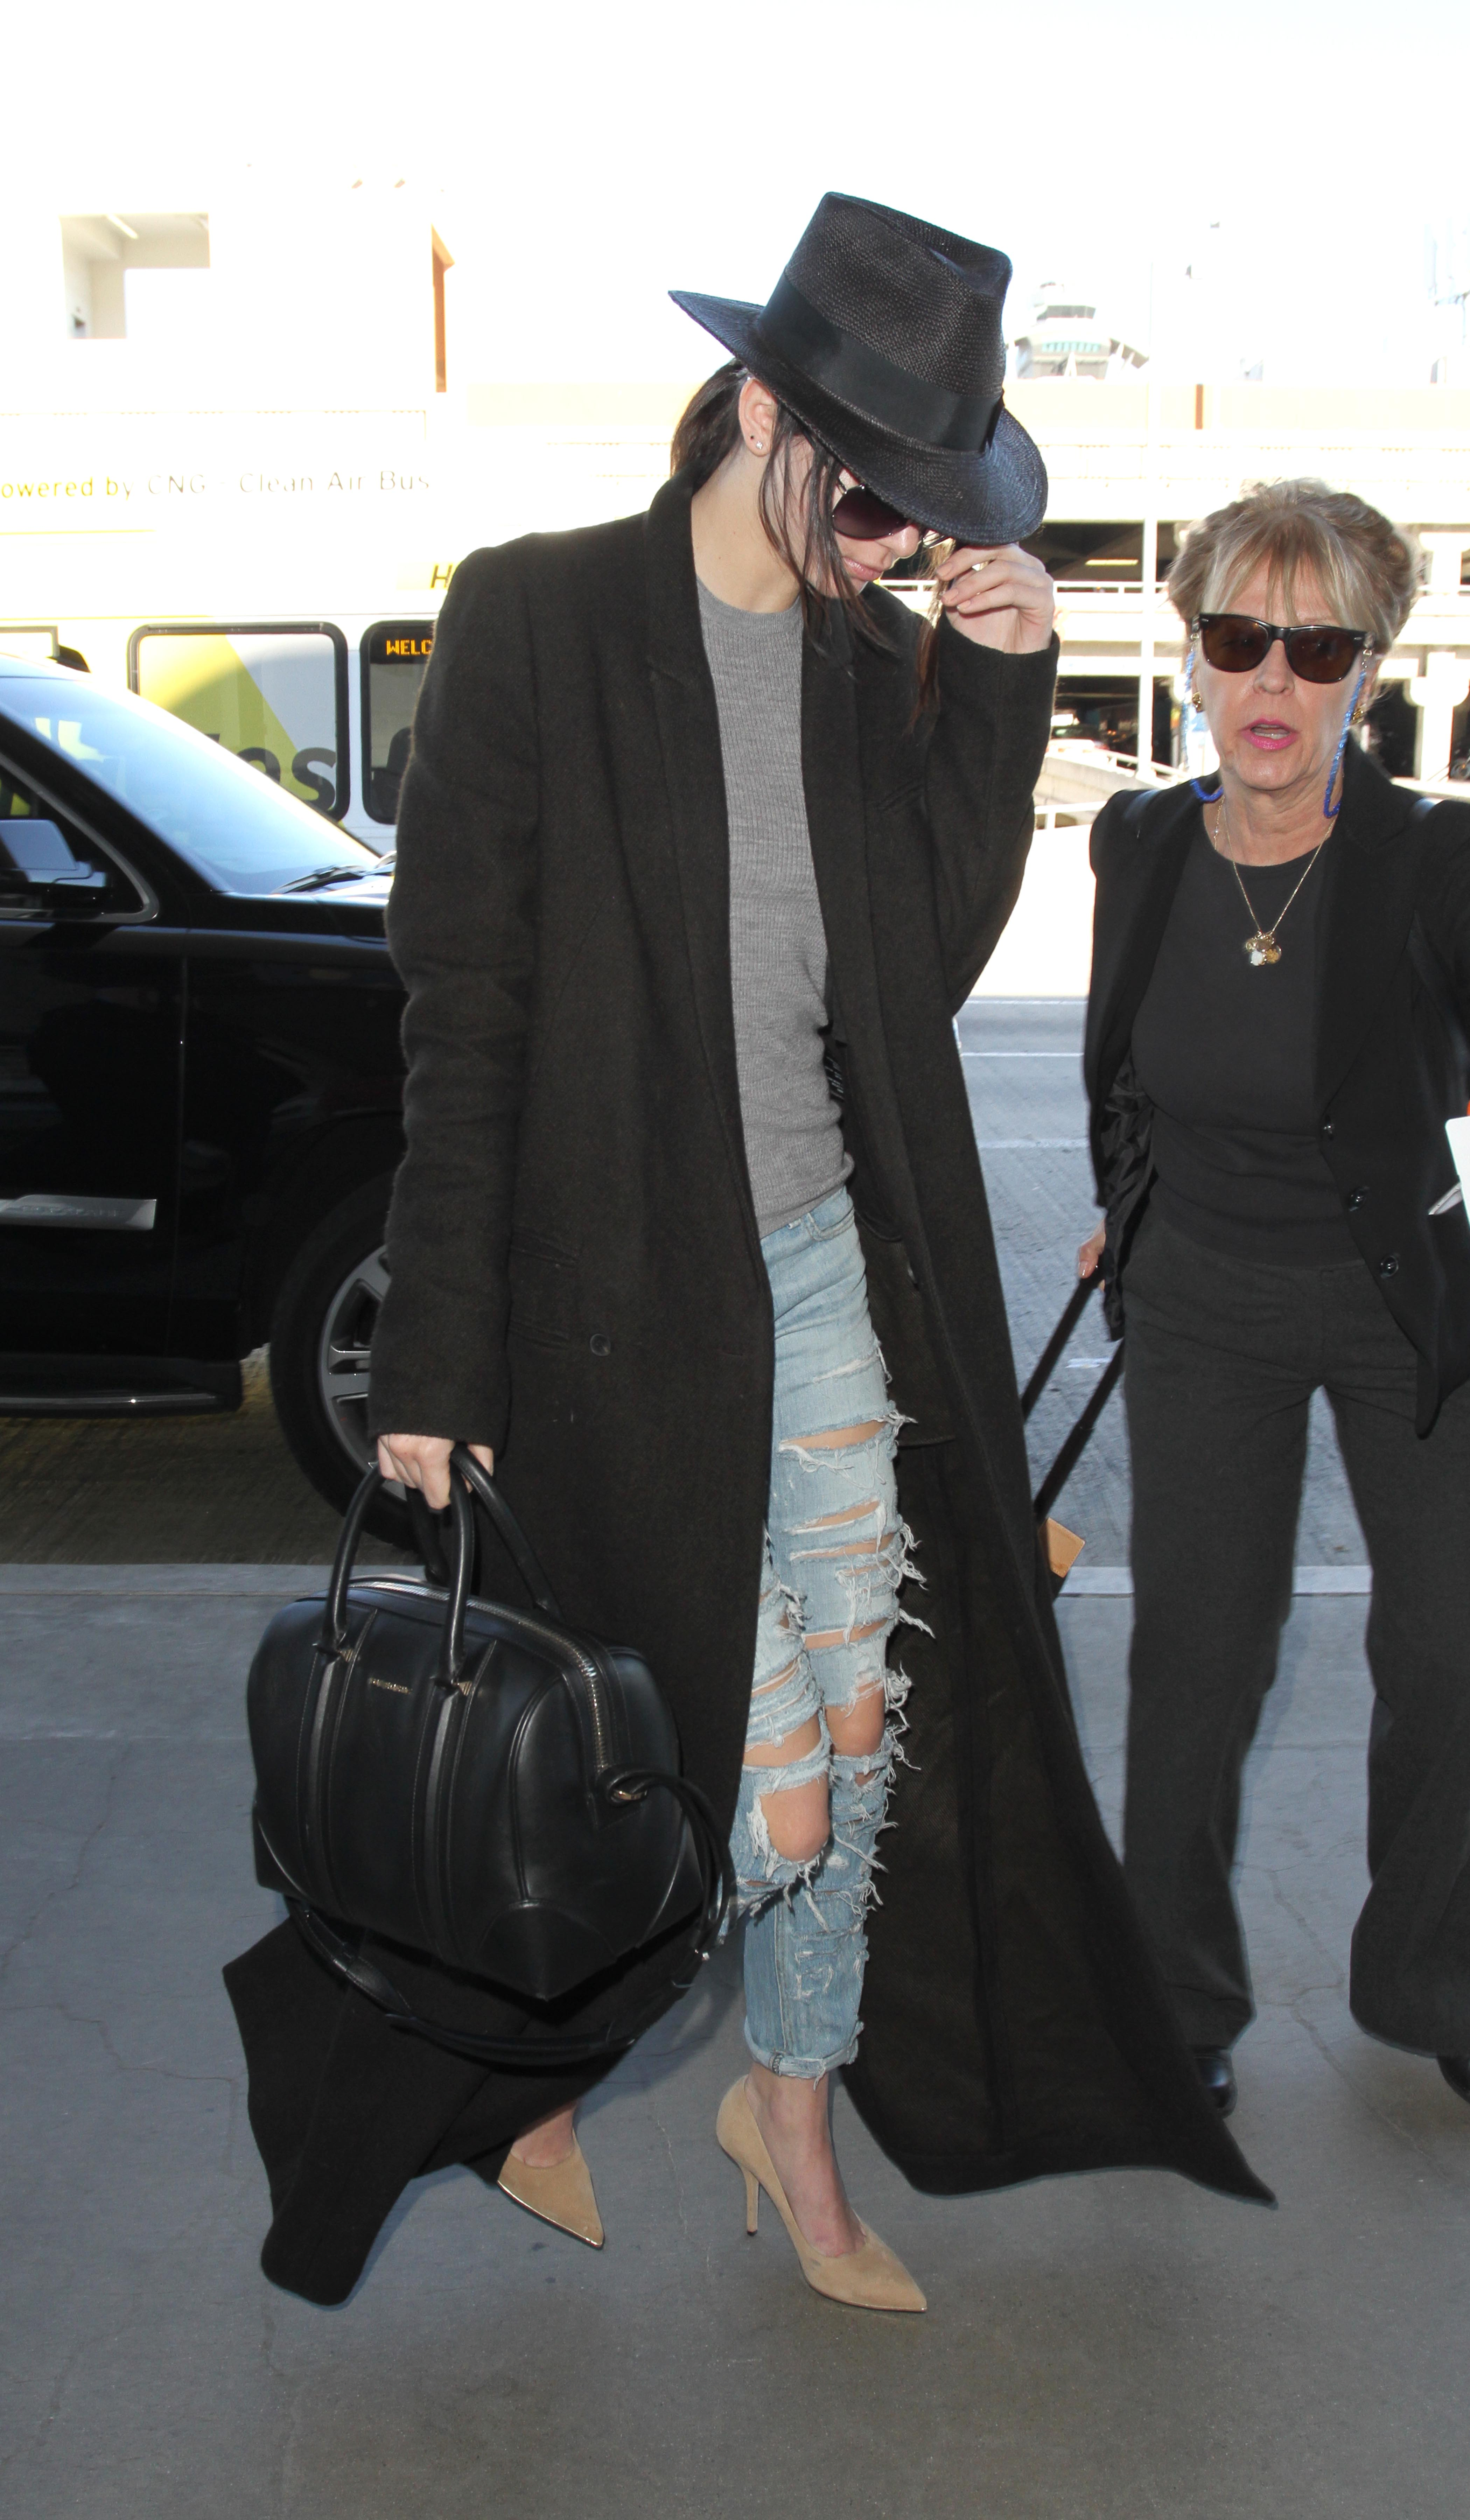 Kendall Jenner looks runway ready even as she sneaks through the airport signing autographs while wearing heels, torn jeans, an overcoat and a big floppy hat.